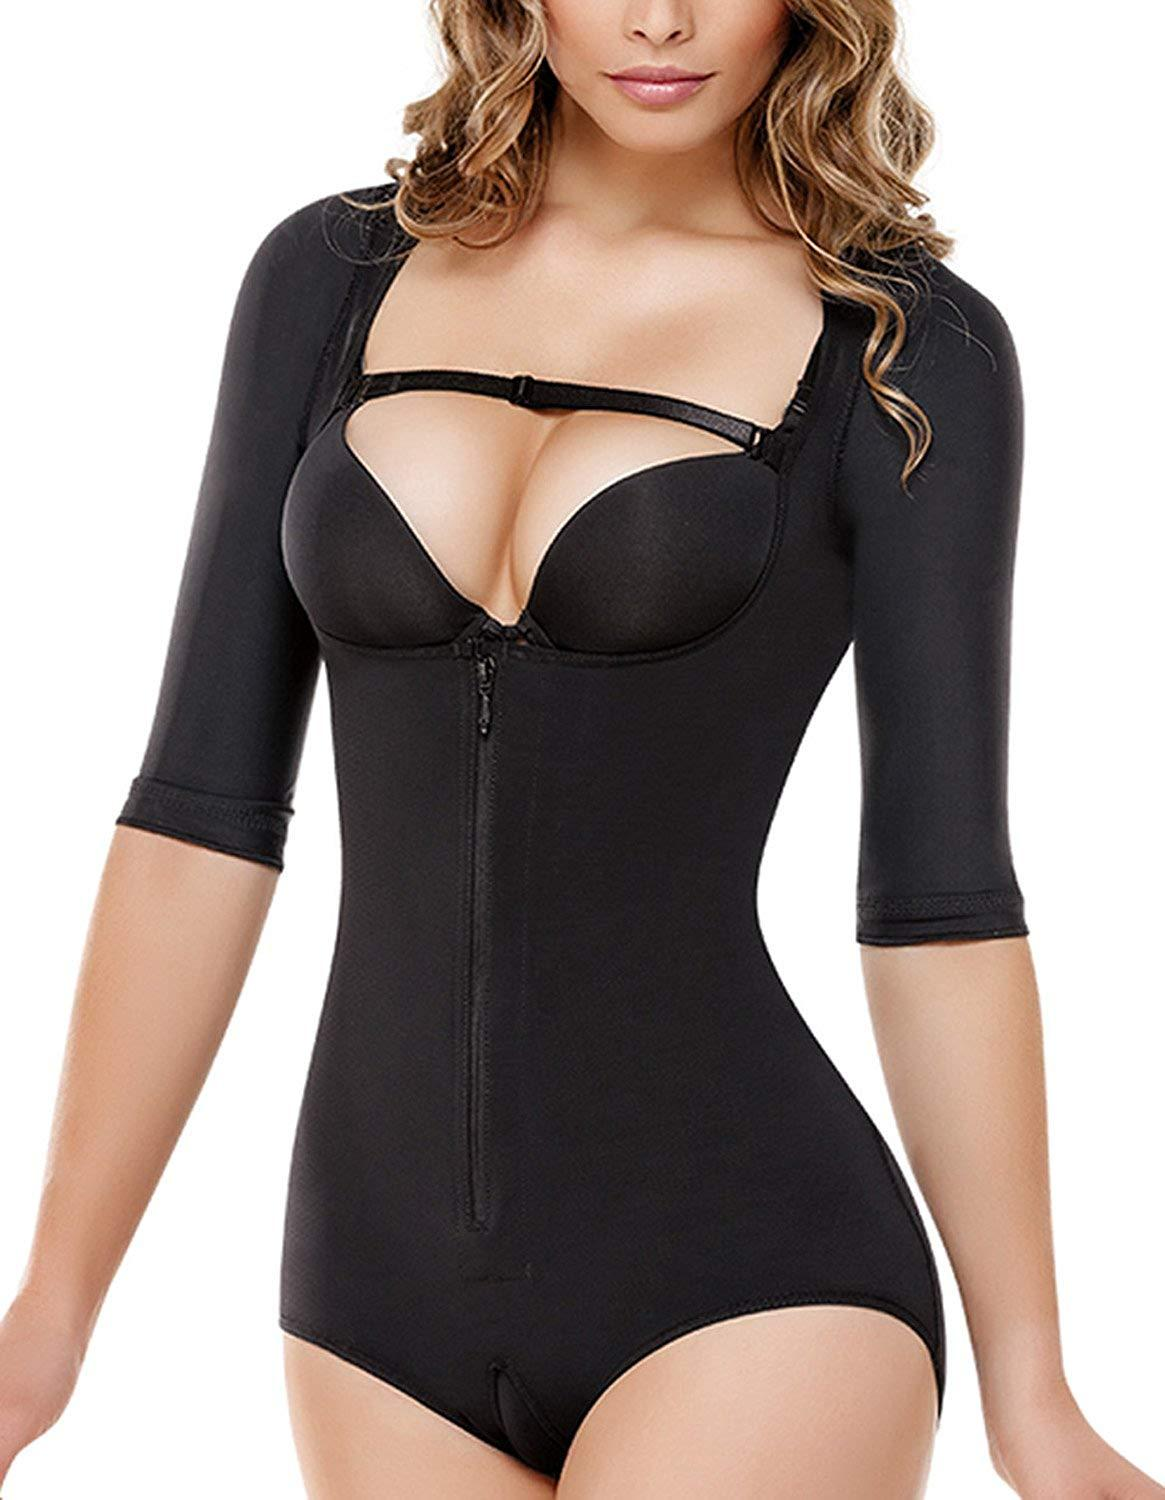 080220b7a8 2019 Hot Sale Women S Arm Compression Shaper Best Bodysuit Butt Lift ...